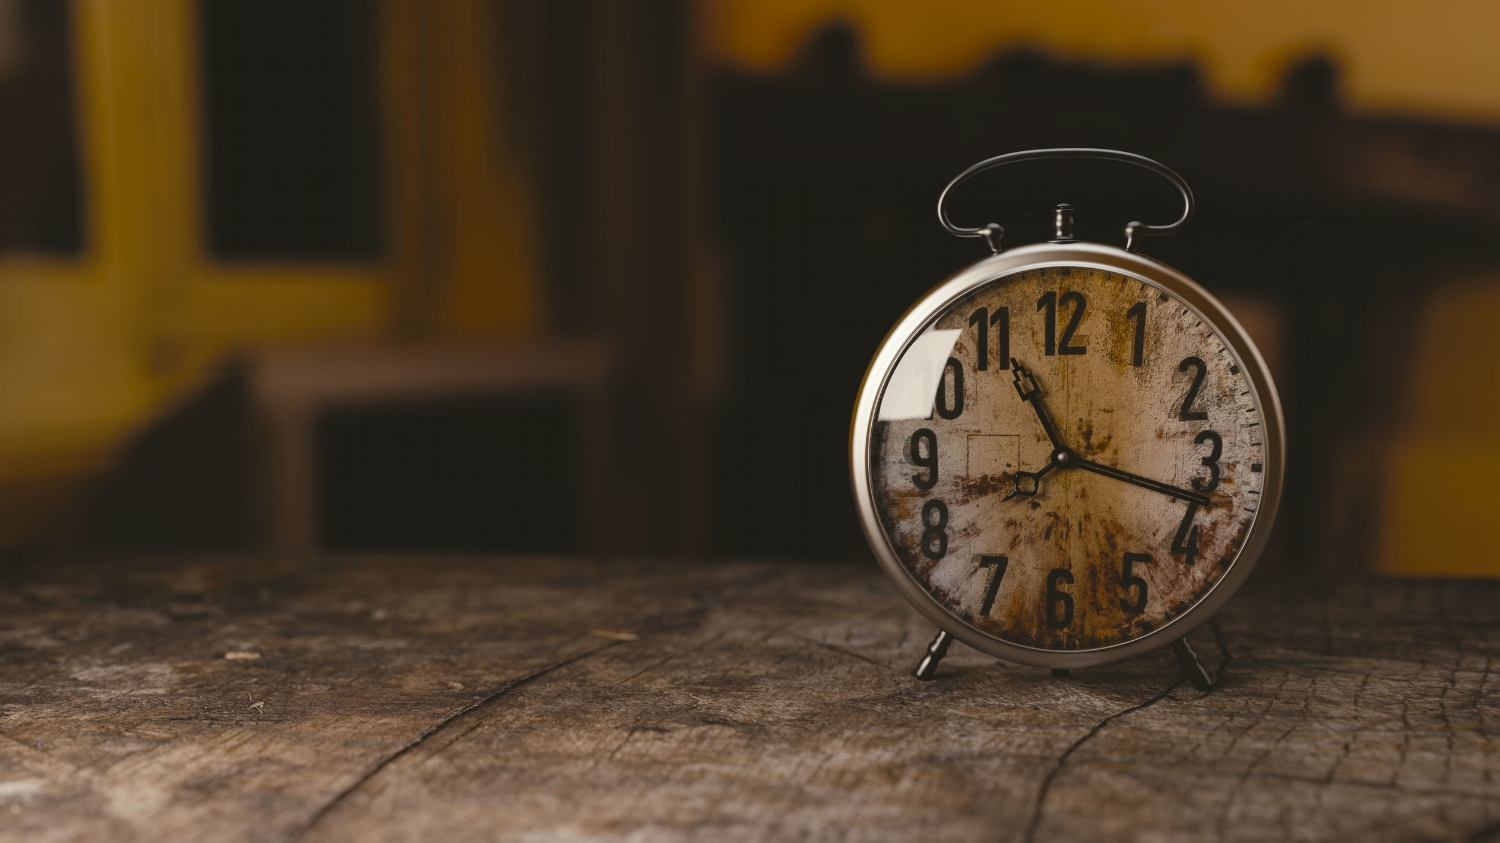 boss-fight-free-high-quality-stock-images-photos-photography-old-clock.jpg